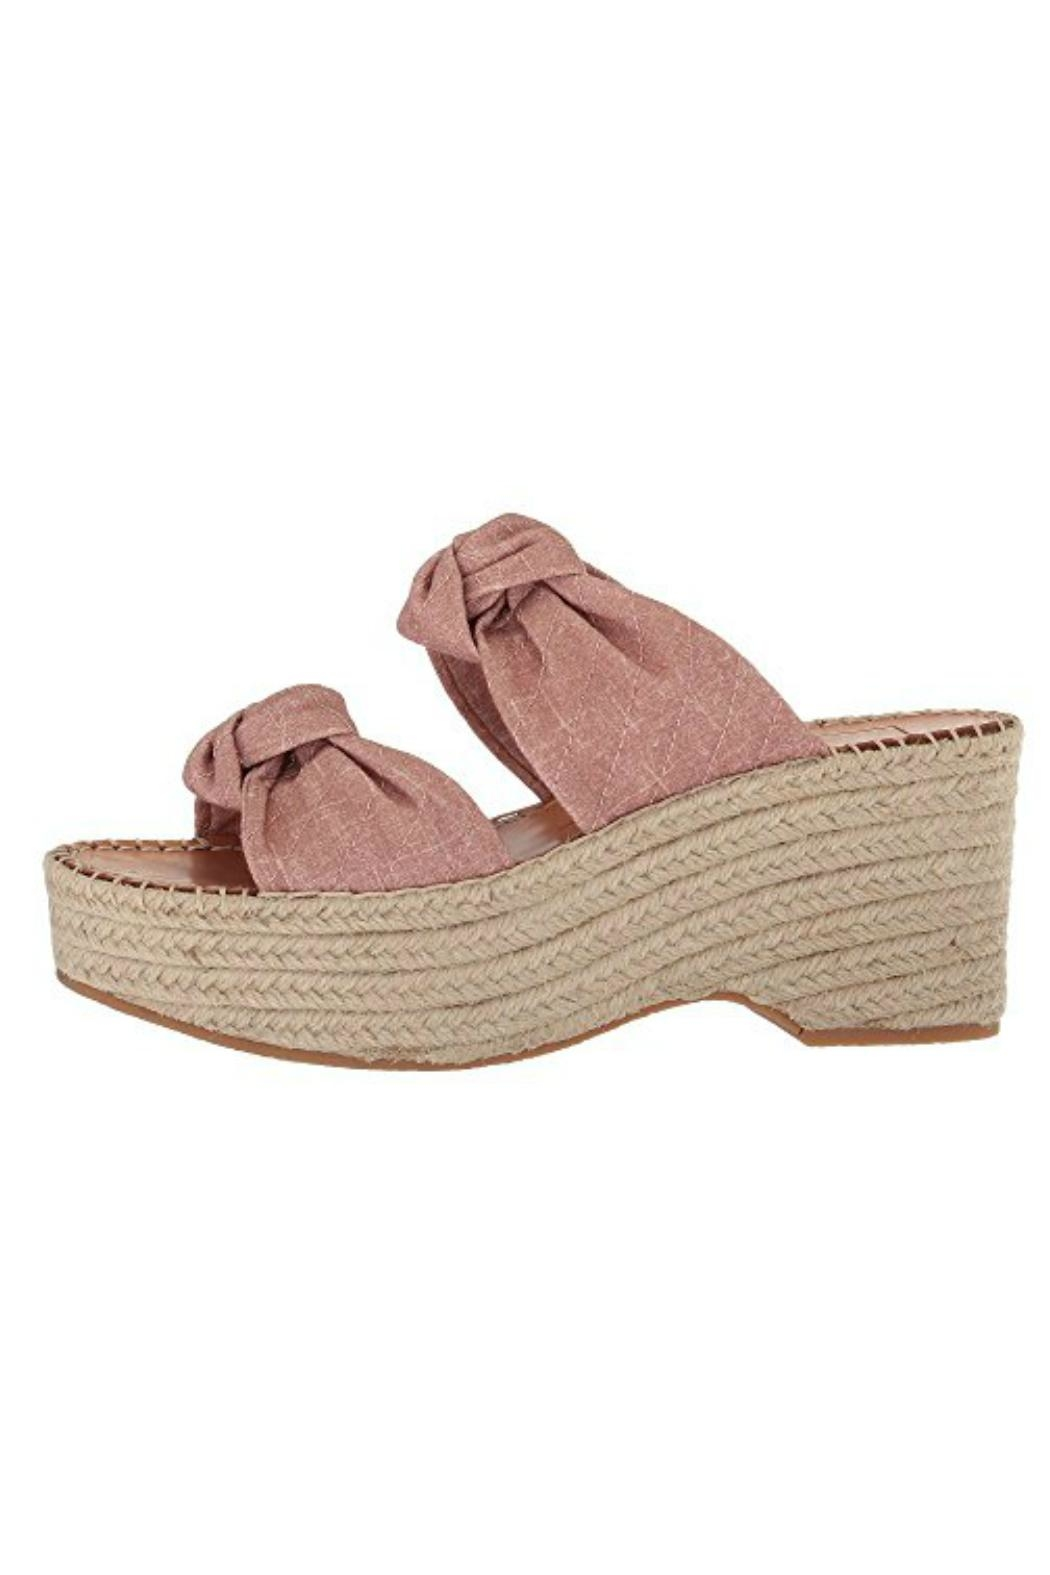 cb947db8b7982 Dolce Vita Blush Linen Espadrille from Pennsylvania by Well-Heeled ...